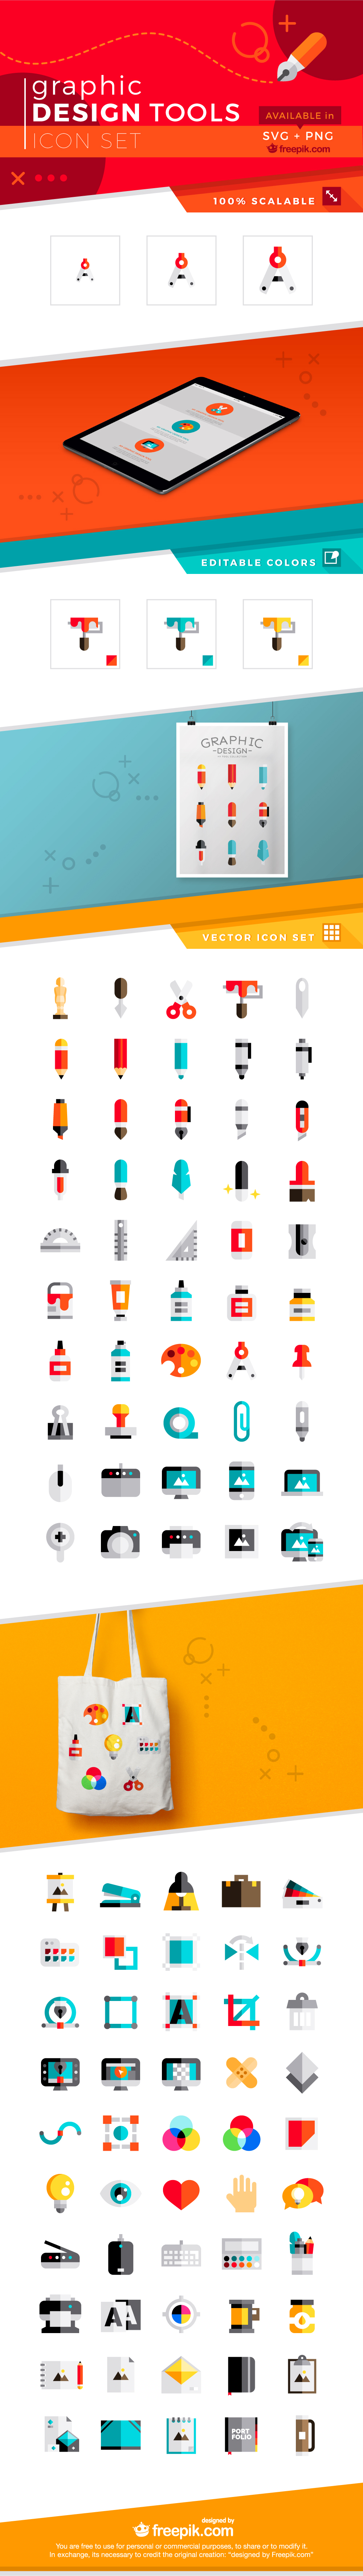 design_tools_icons_cover-01